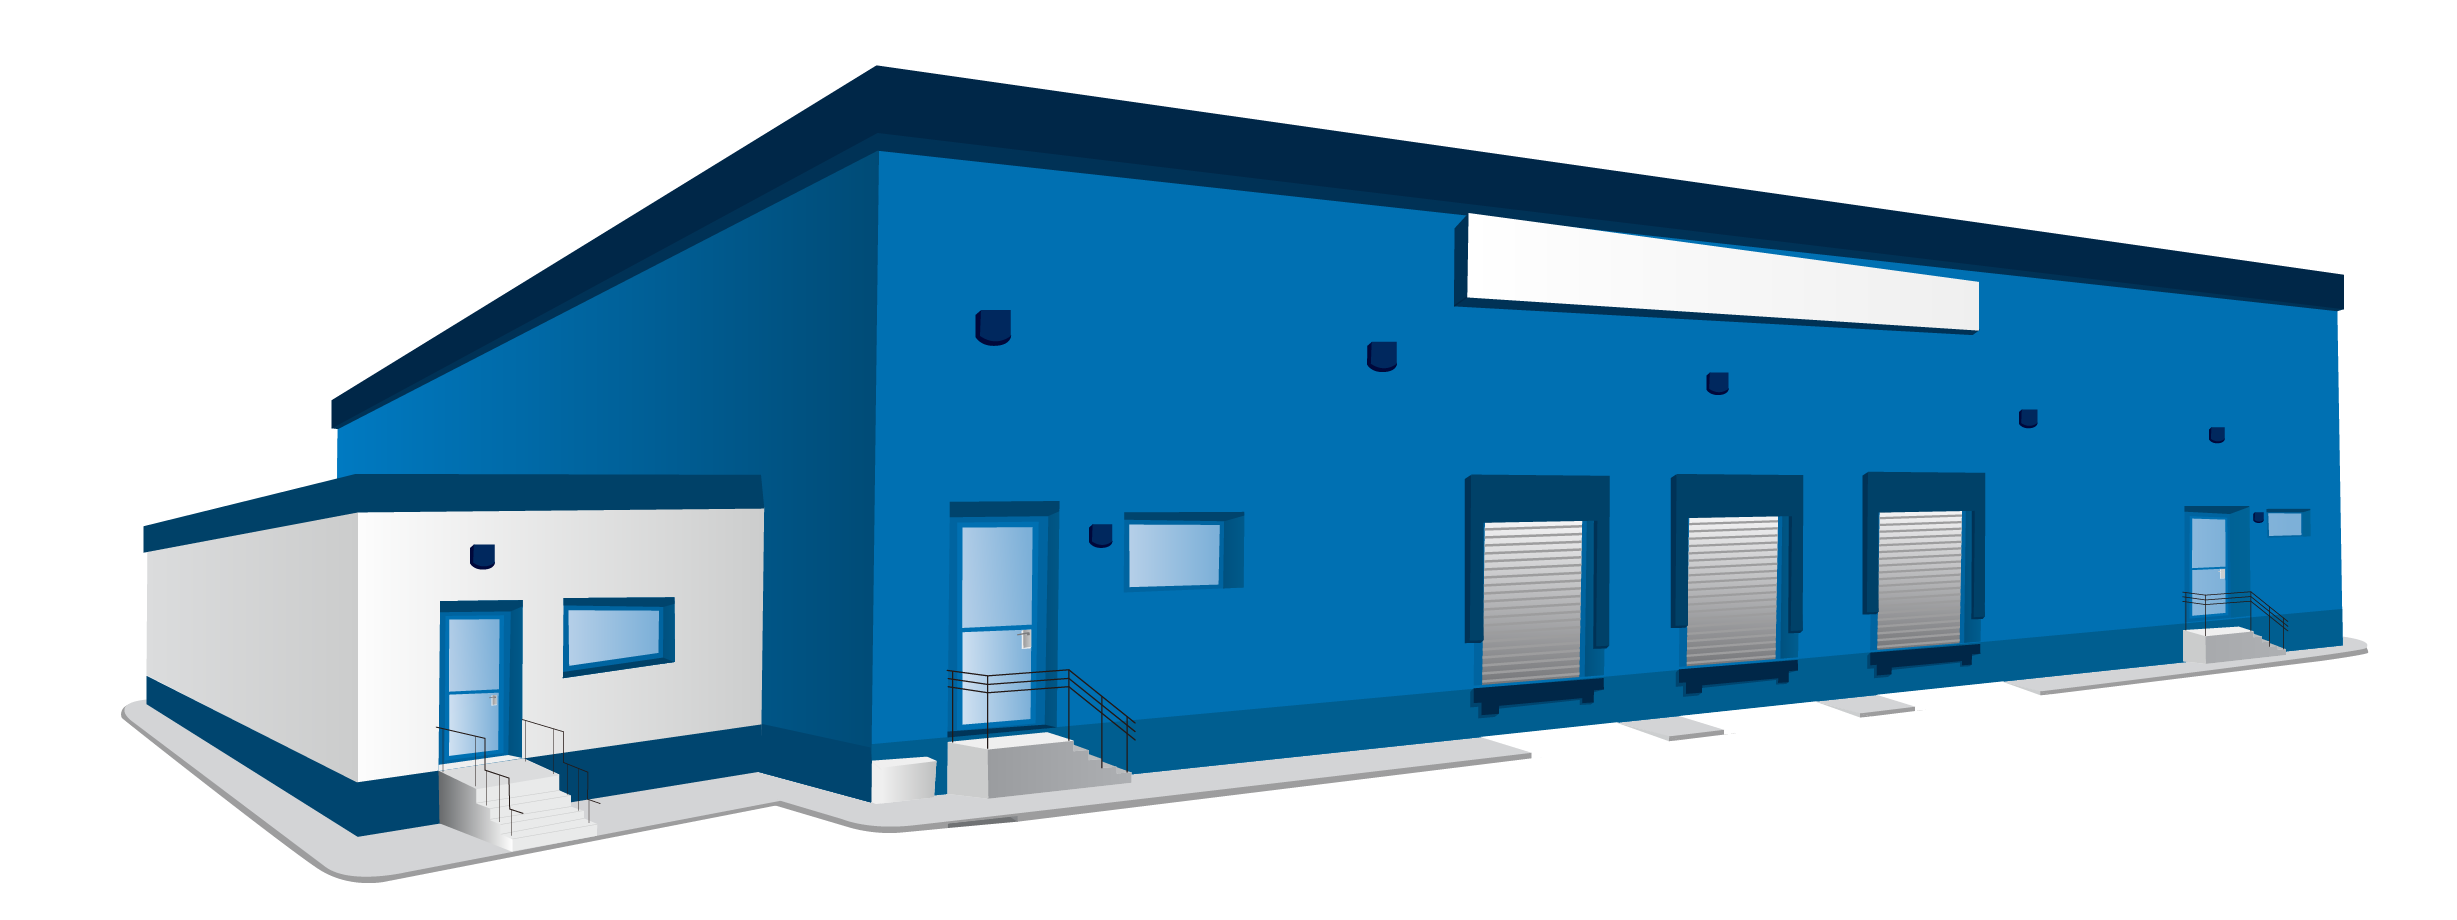 Factory at getdrawings com. Engineer clipart constructing a building